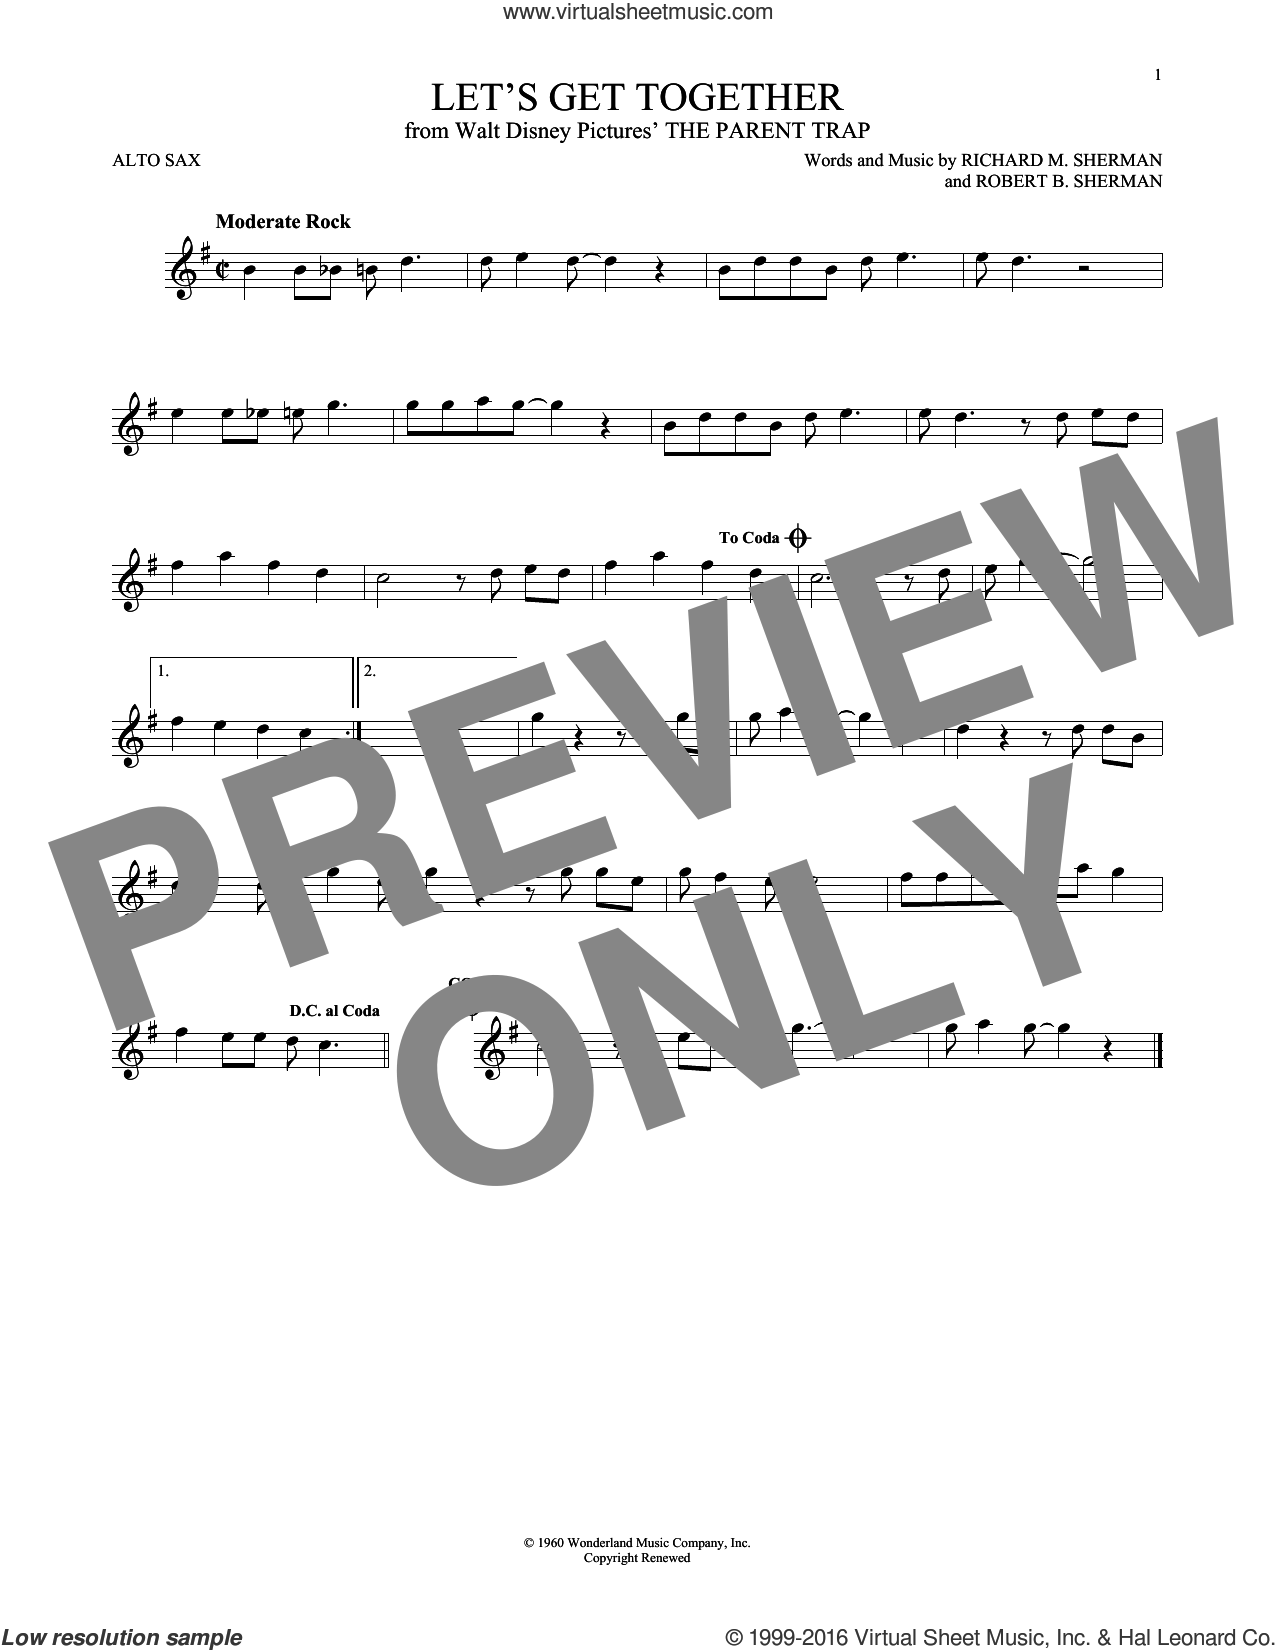 Let's Get Together sheet music for alto saxophone solo by Hayley Mills, Richard M. Sherman and Robert B. Sherman, intermediate skill level